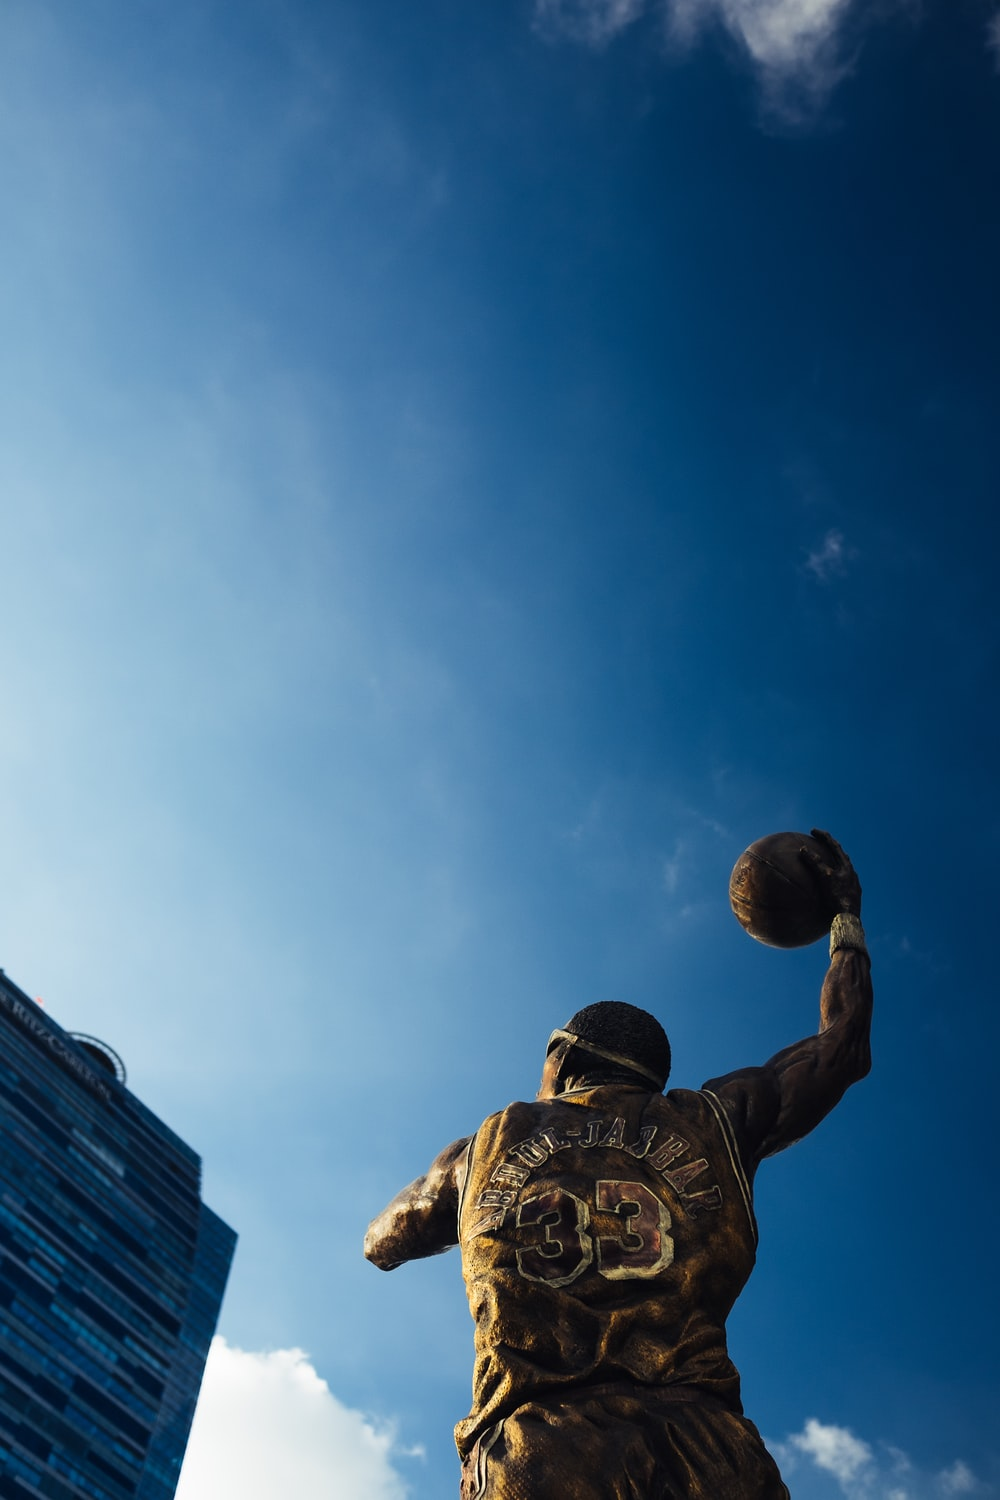 NBA player statue